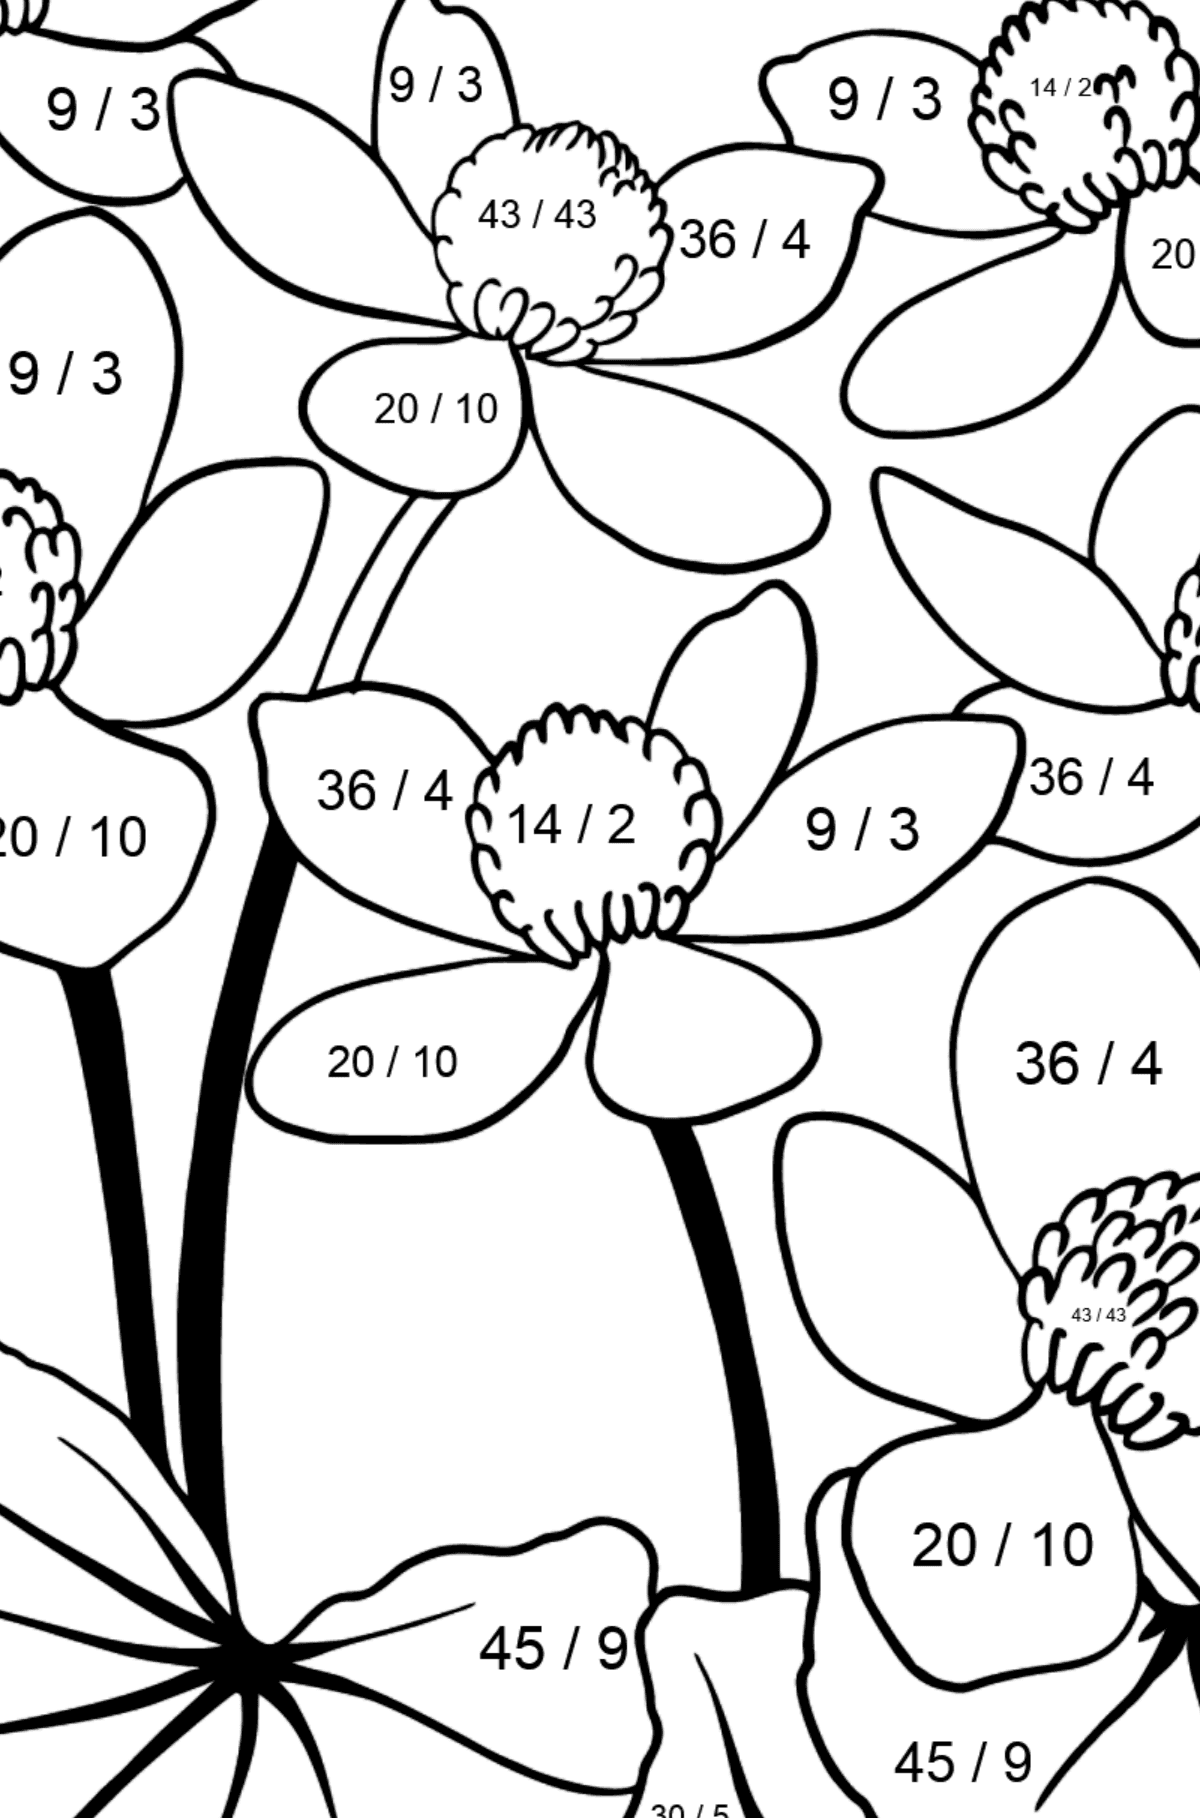 Flower Coloring Page - Marsh Marigold - Math Coloring - Division for Kids